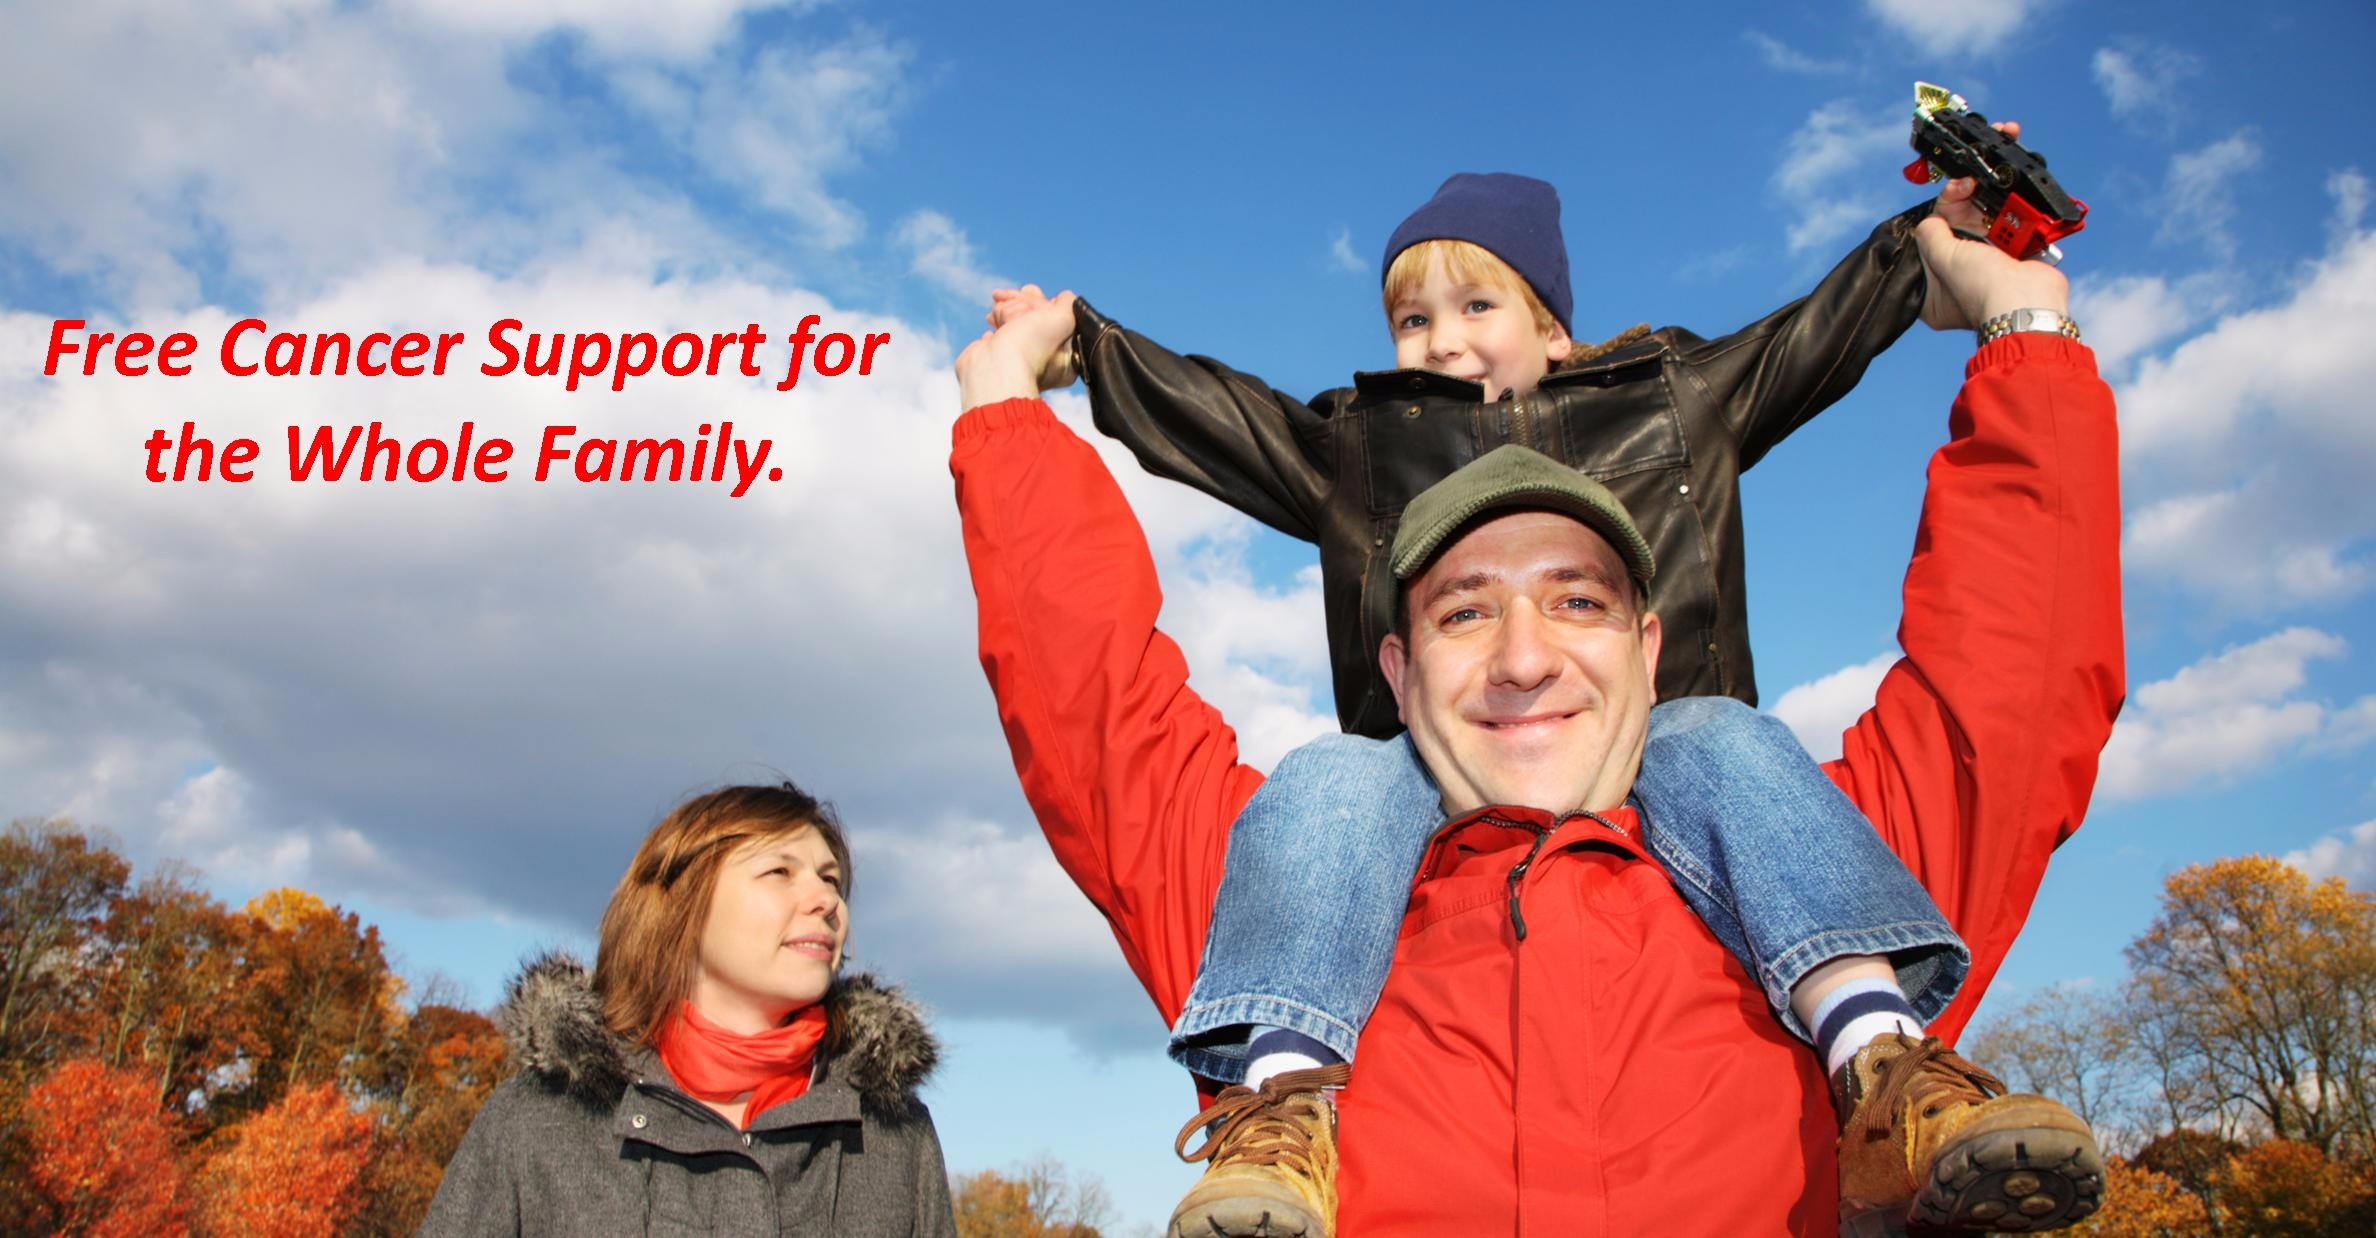 Family Cancer Support